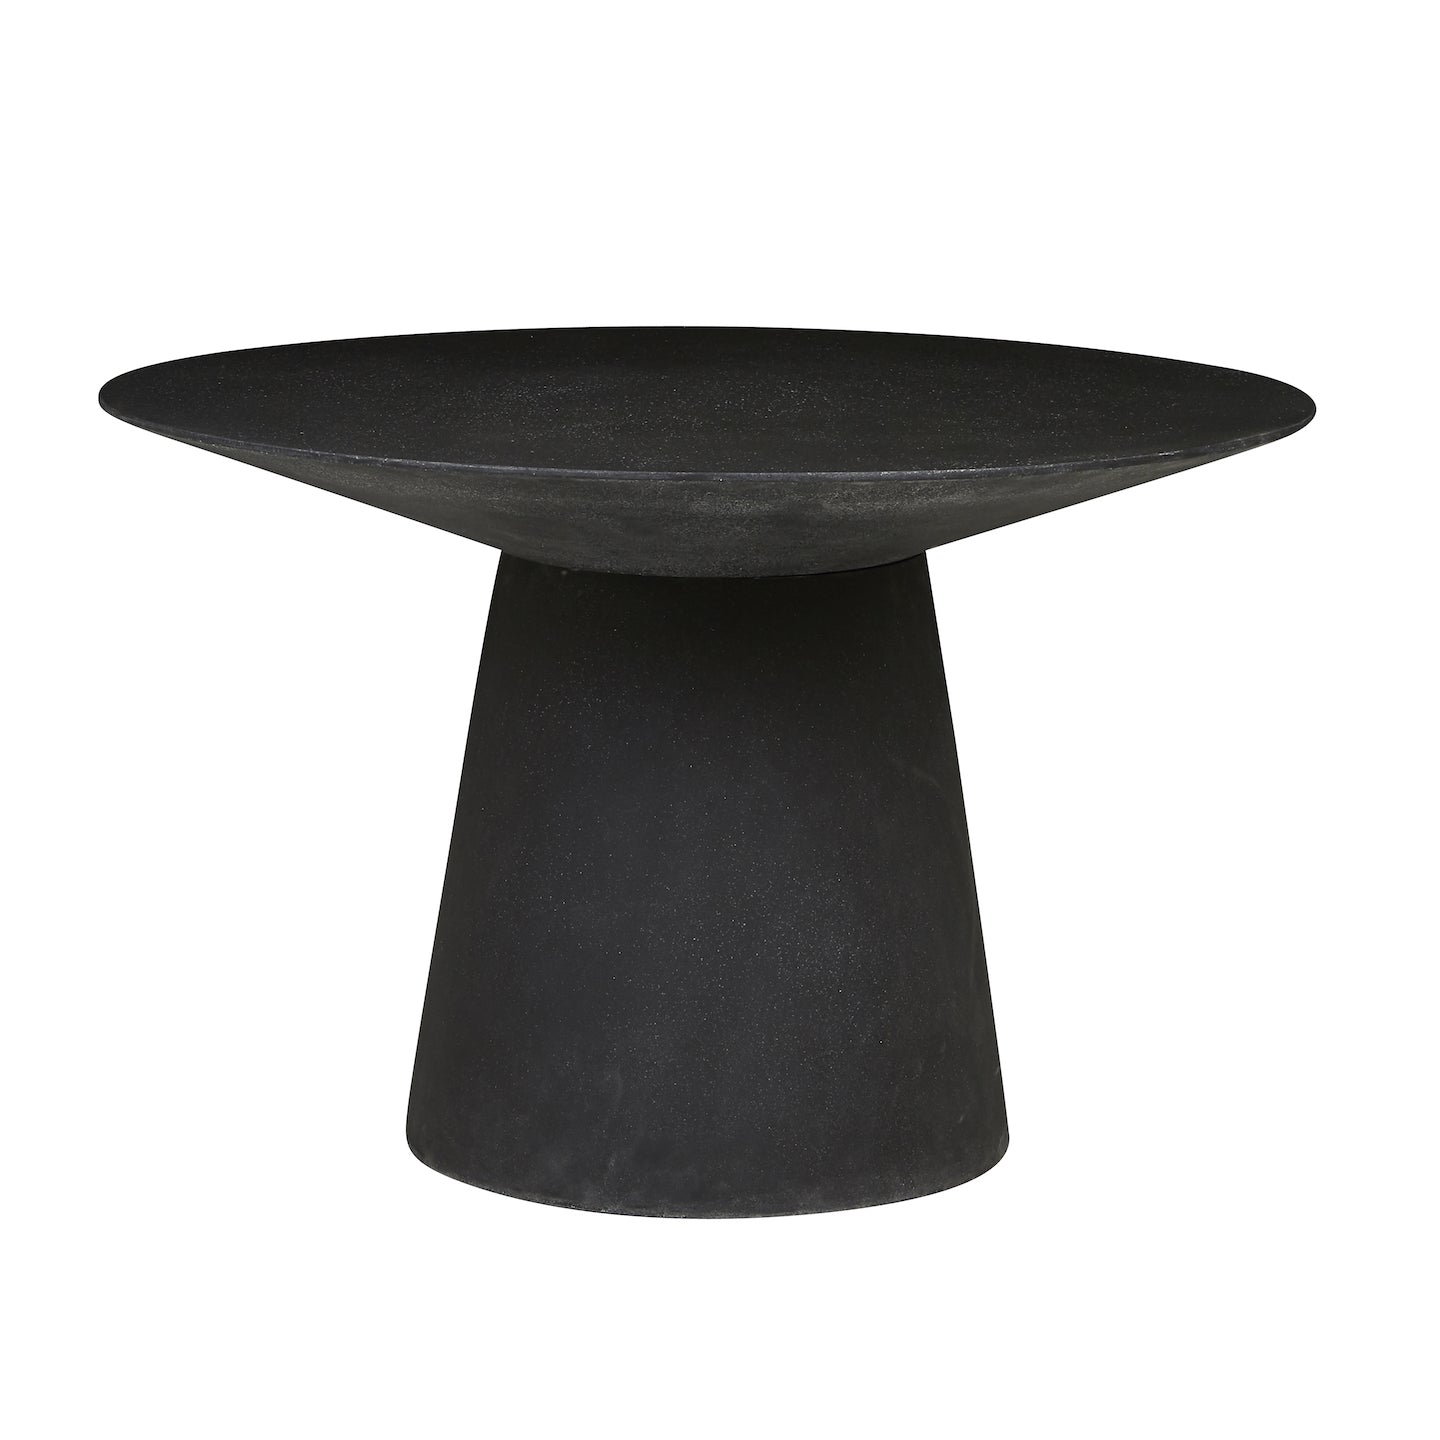 Livorno Round Concrete Patio Dining Table | Black